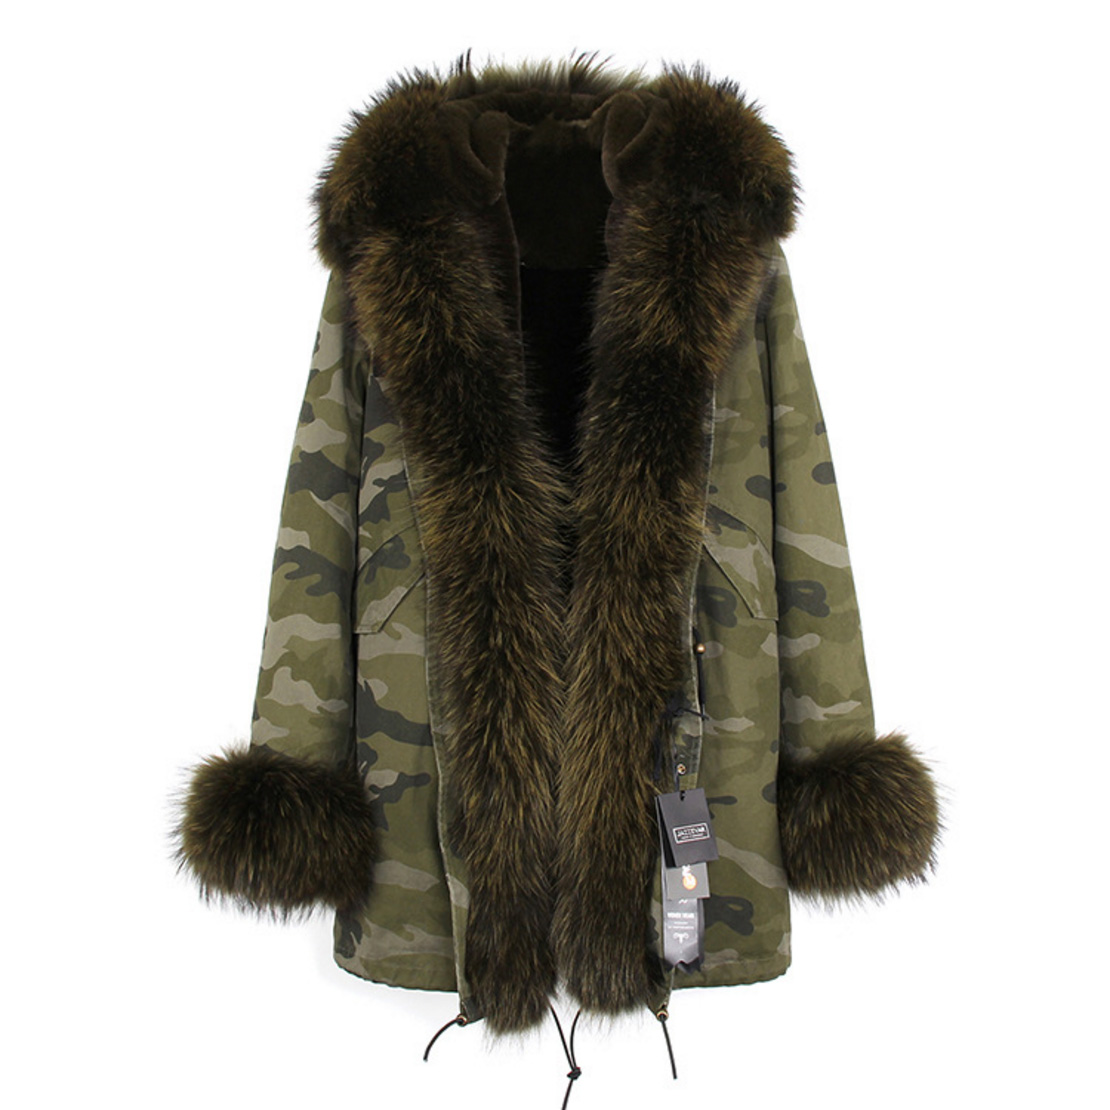 Raccoon Fur Trimmed Hooded Parka with Detachable Faux Rex Rabbit Fur Liner 122b-5